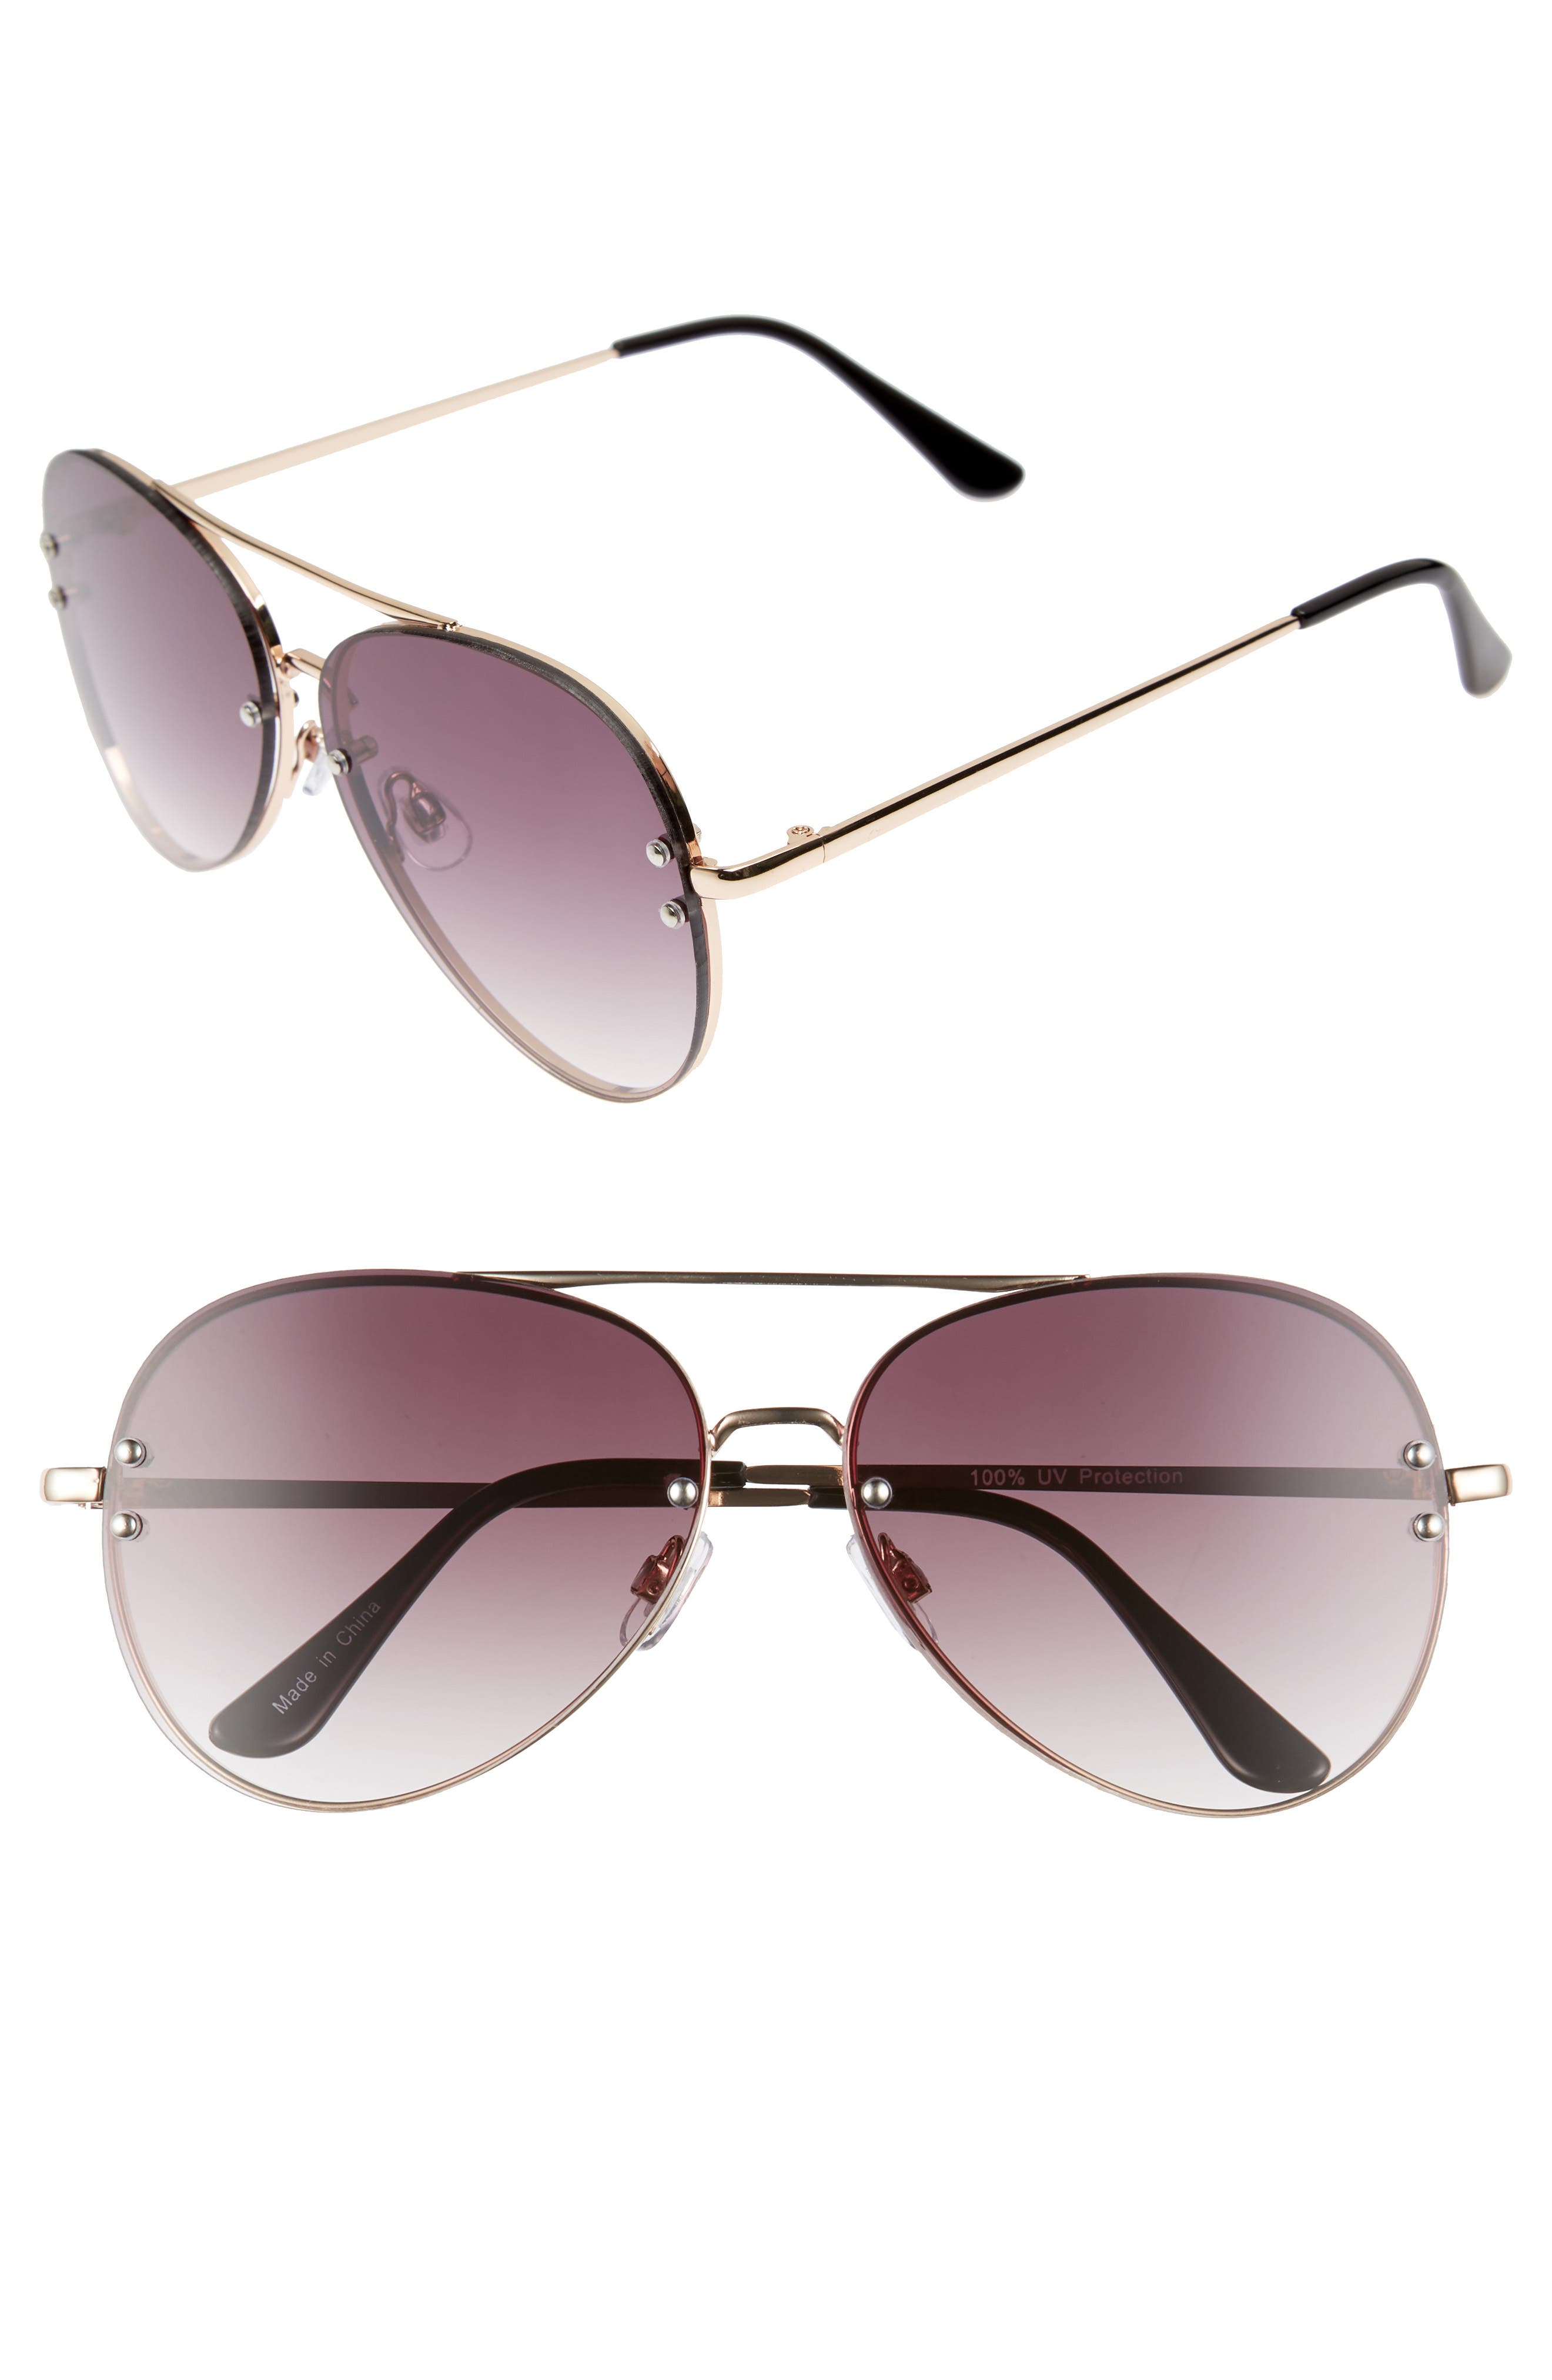 BP. 60mm Oversize Mirrored Aviator Sunglasses